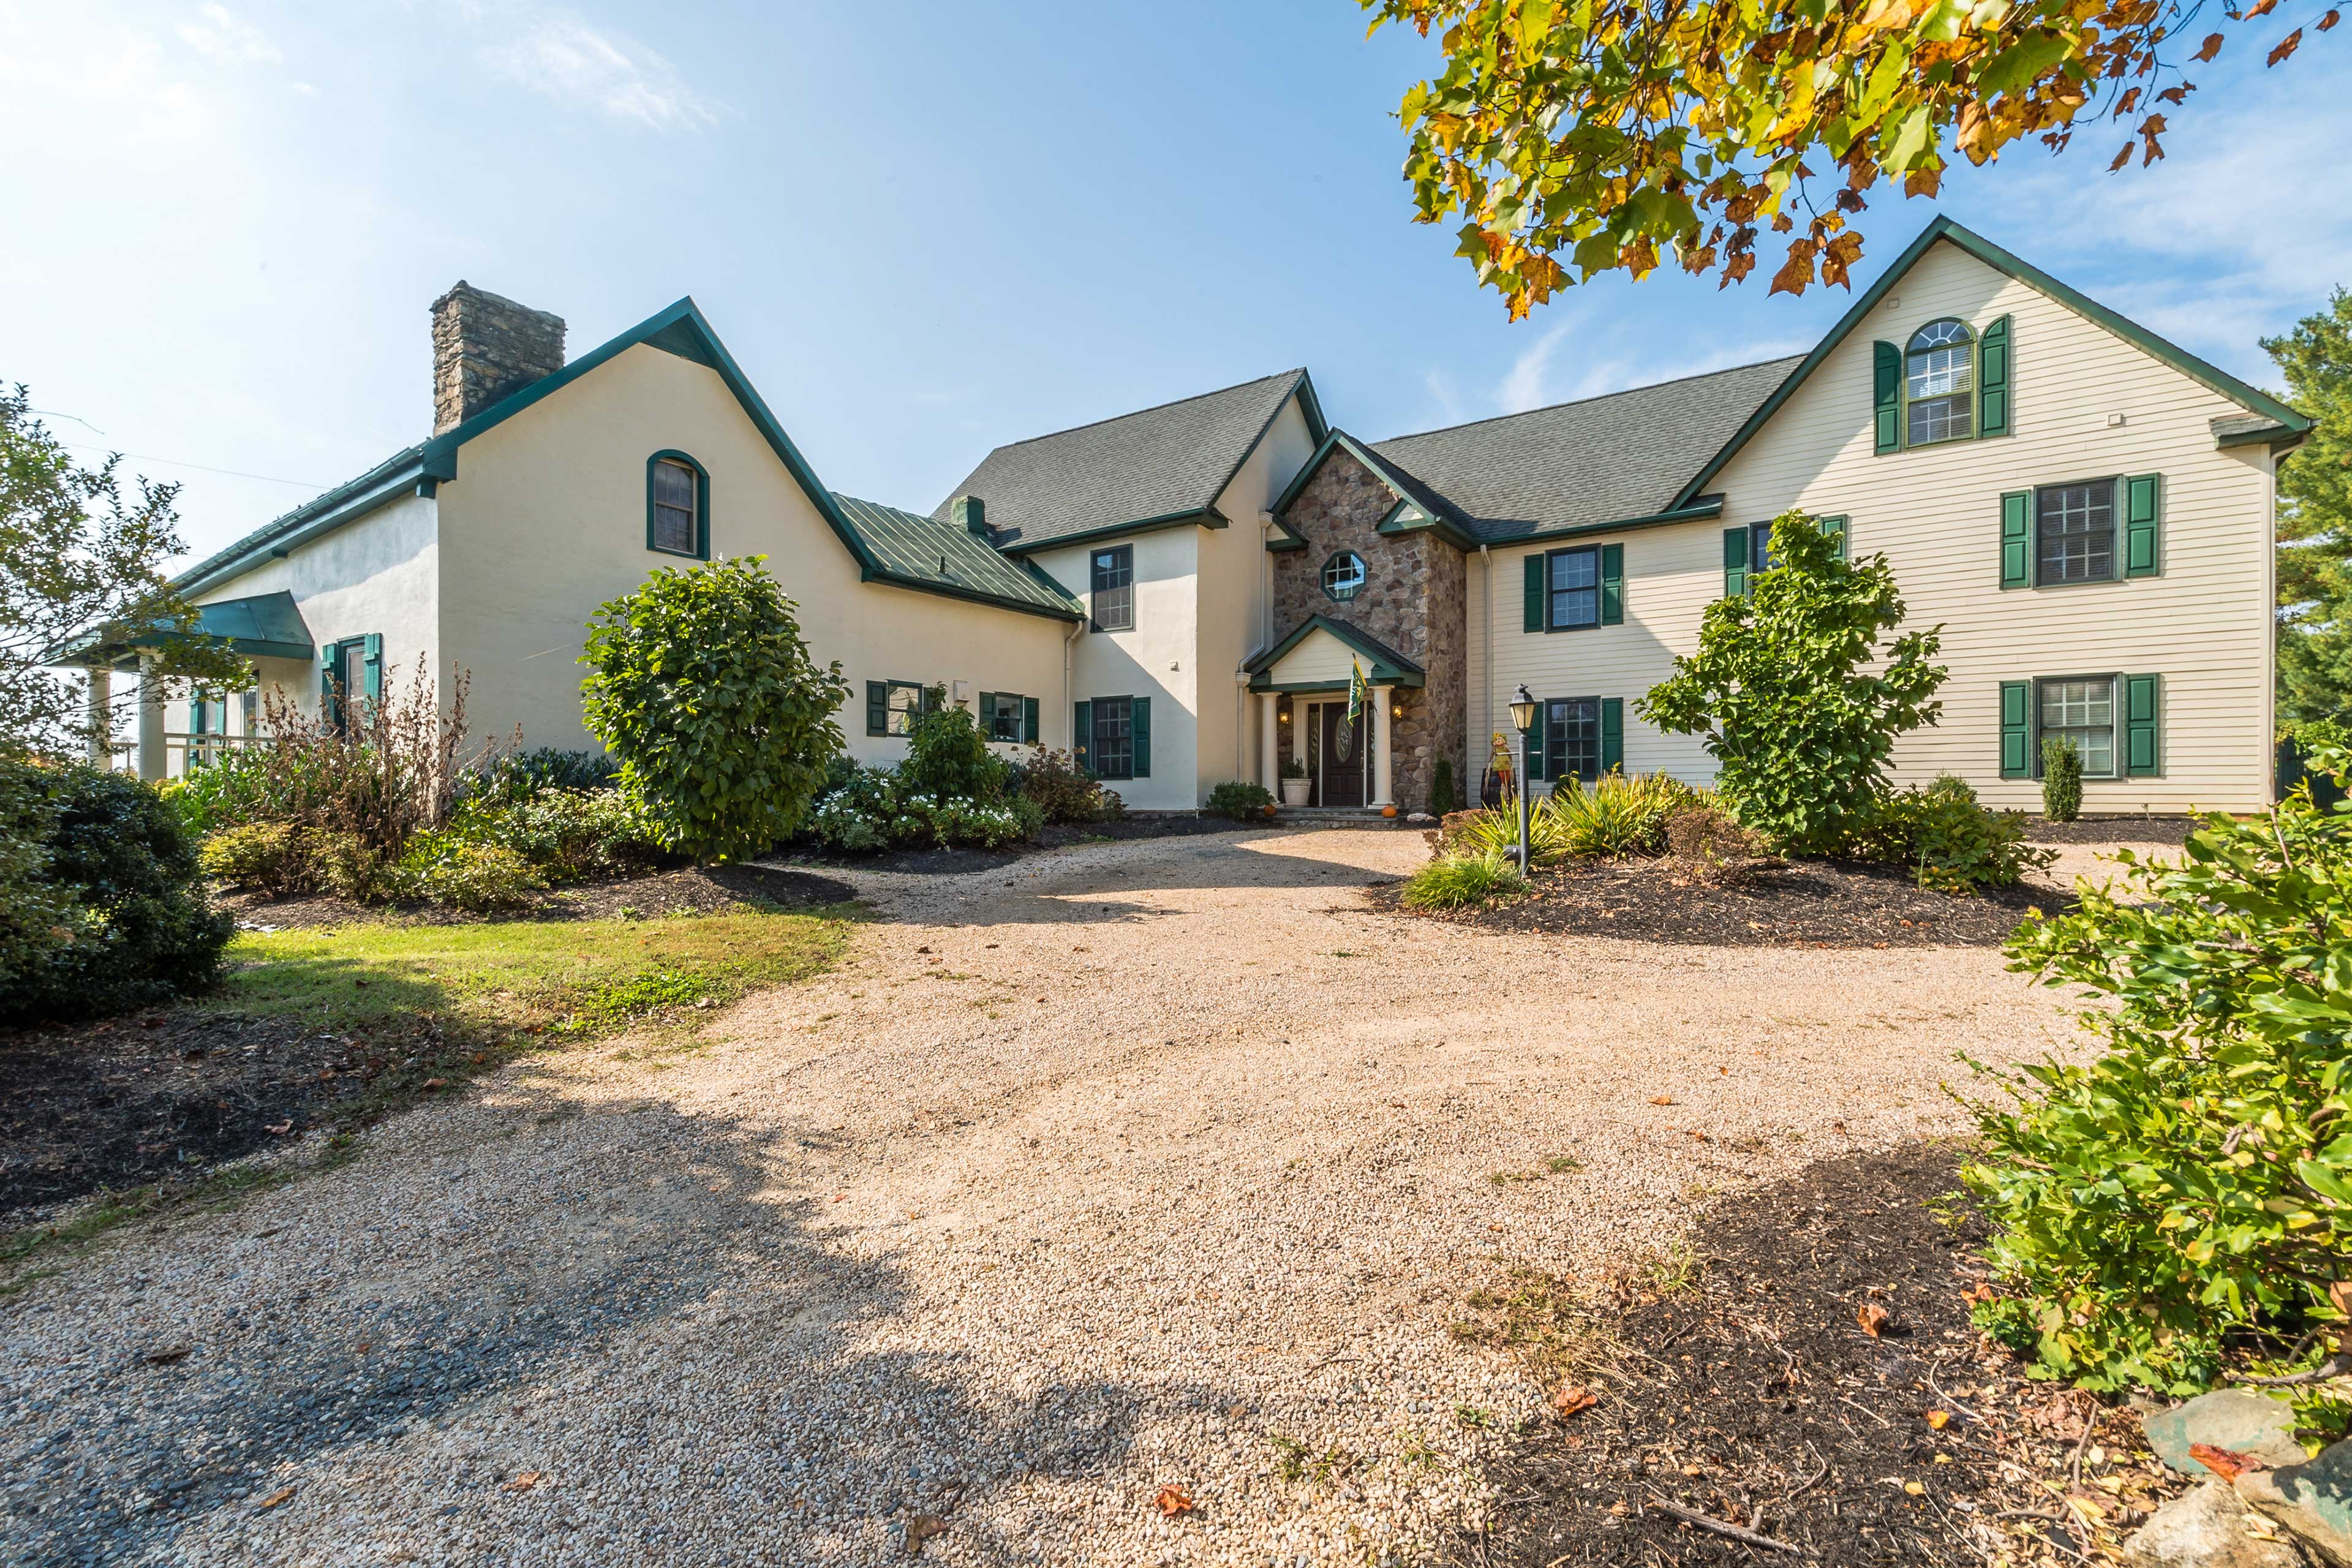 6,100 Sq Ft | Driveway Parking for 6